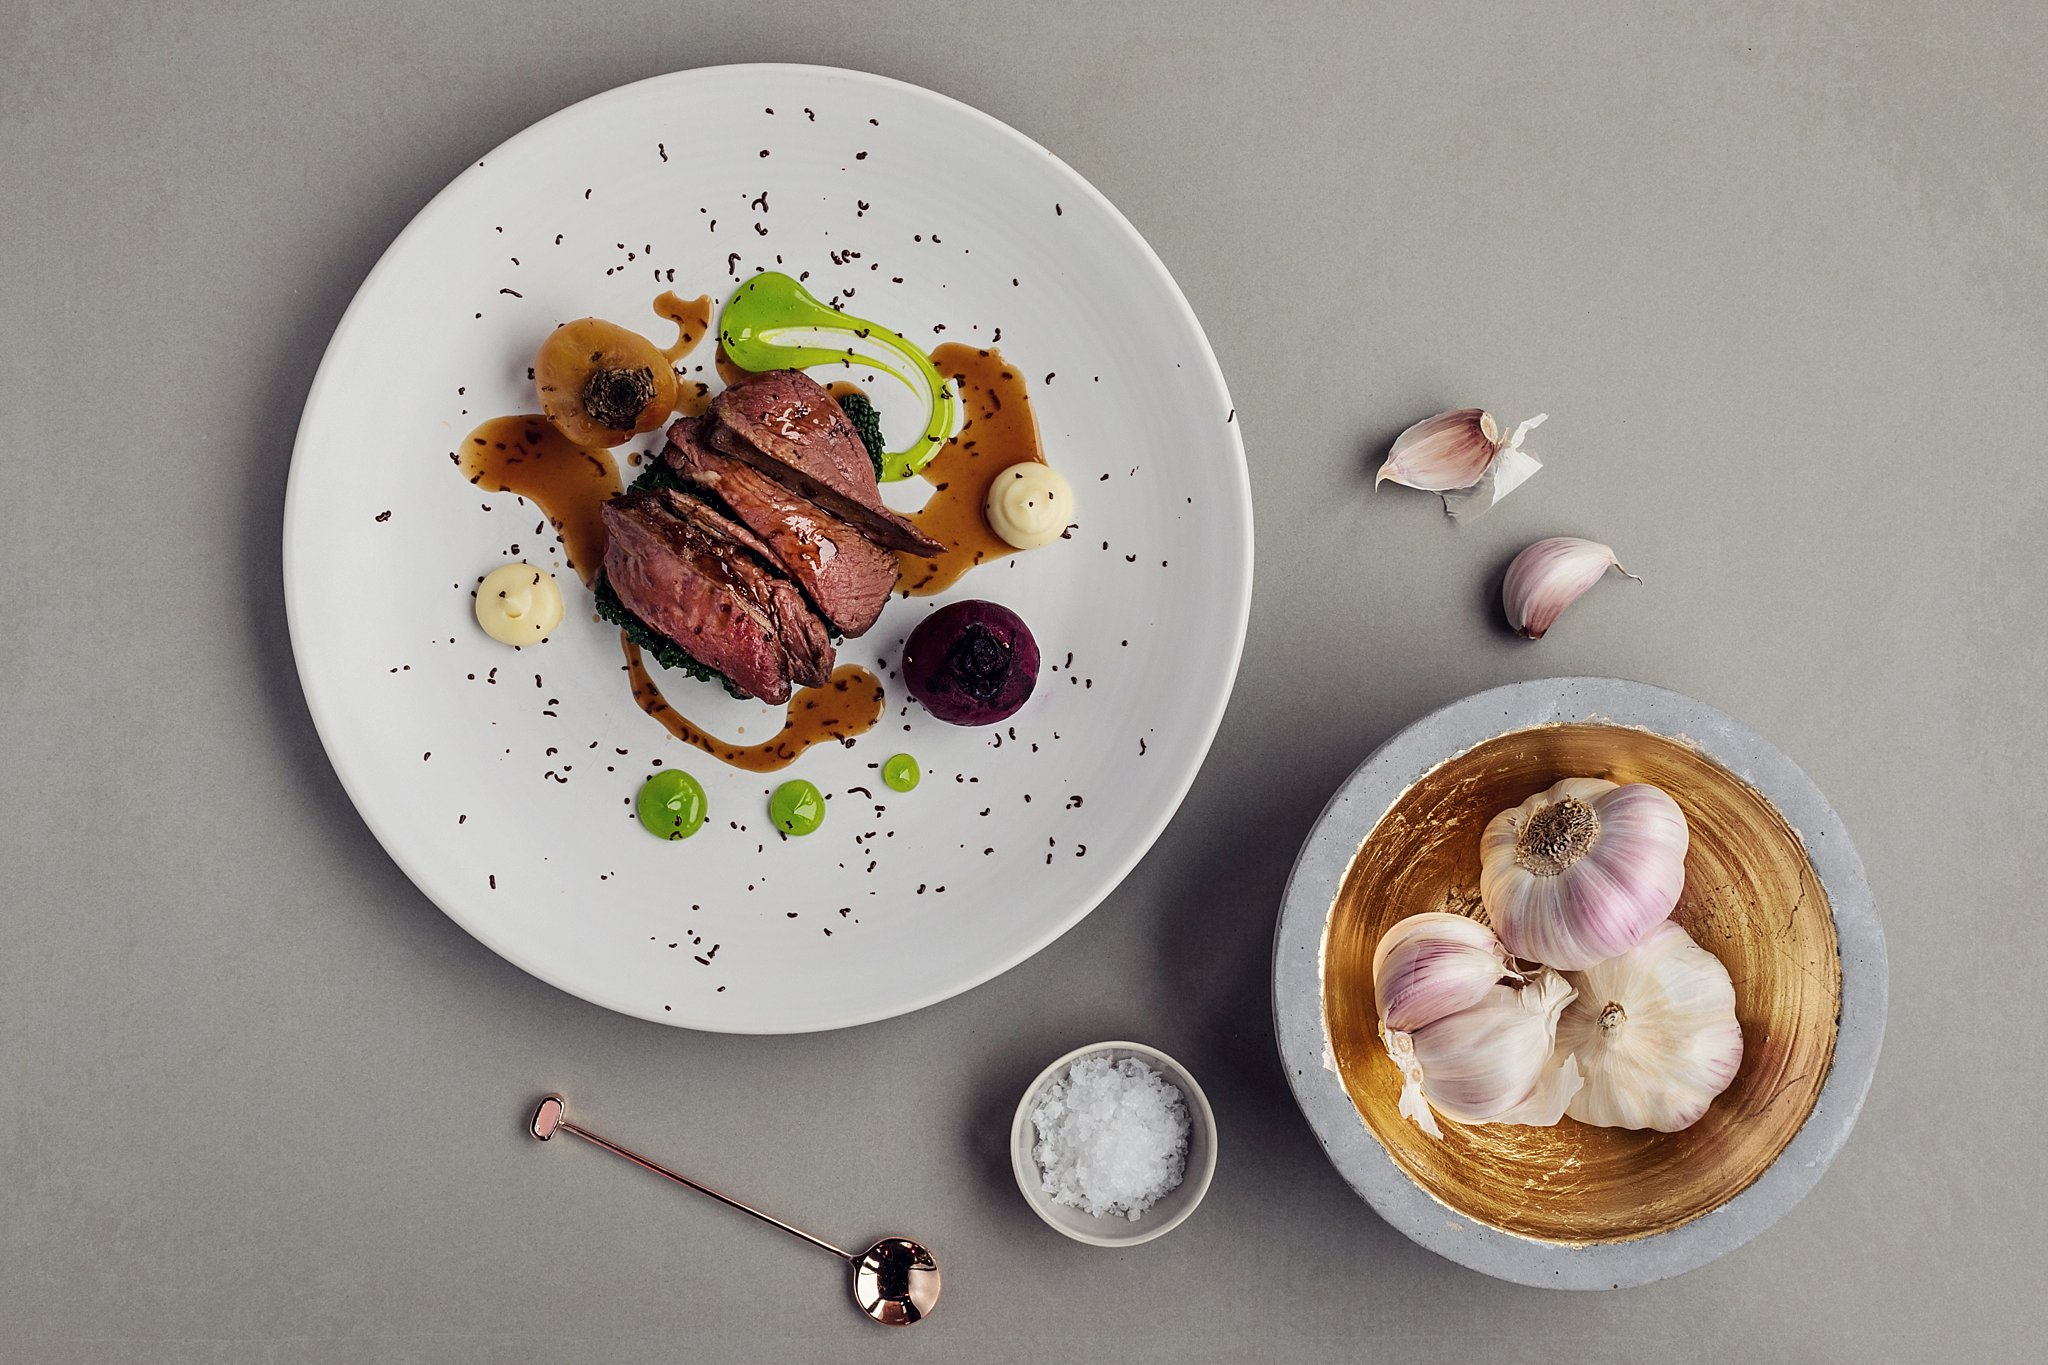 Beef dish with whole clove garlic and rock salt